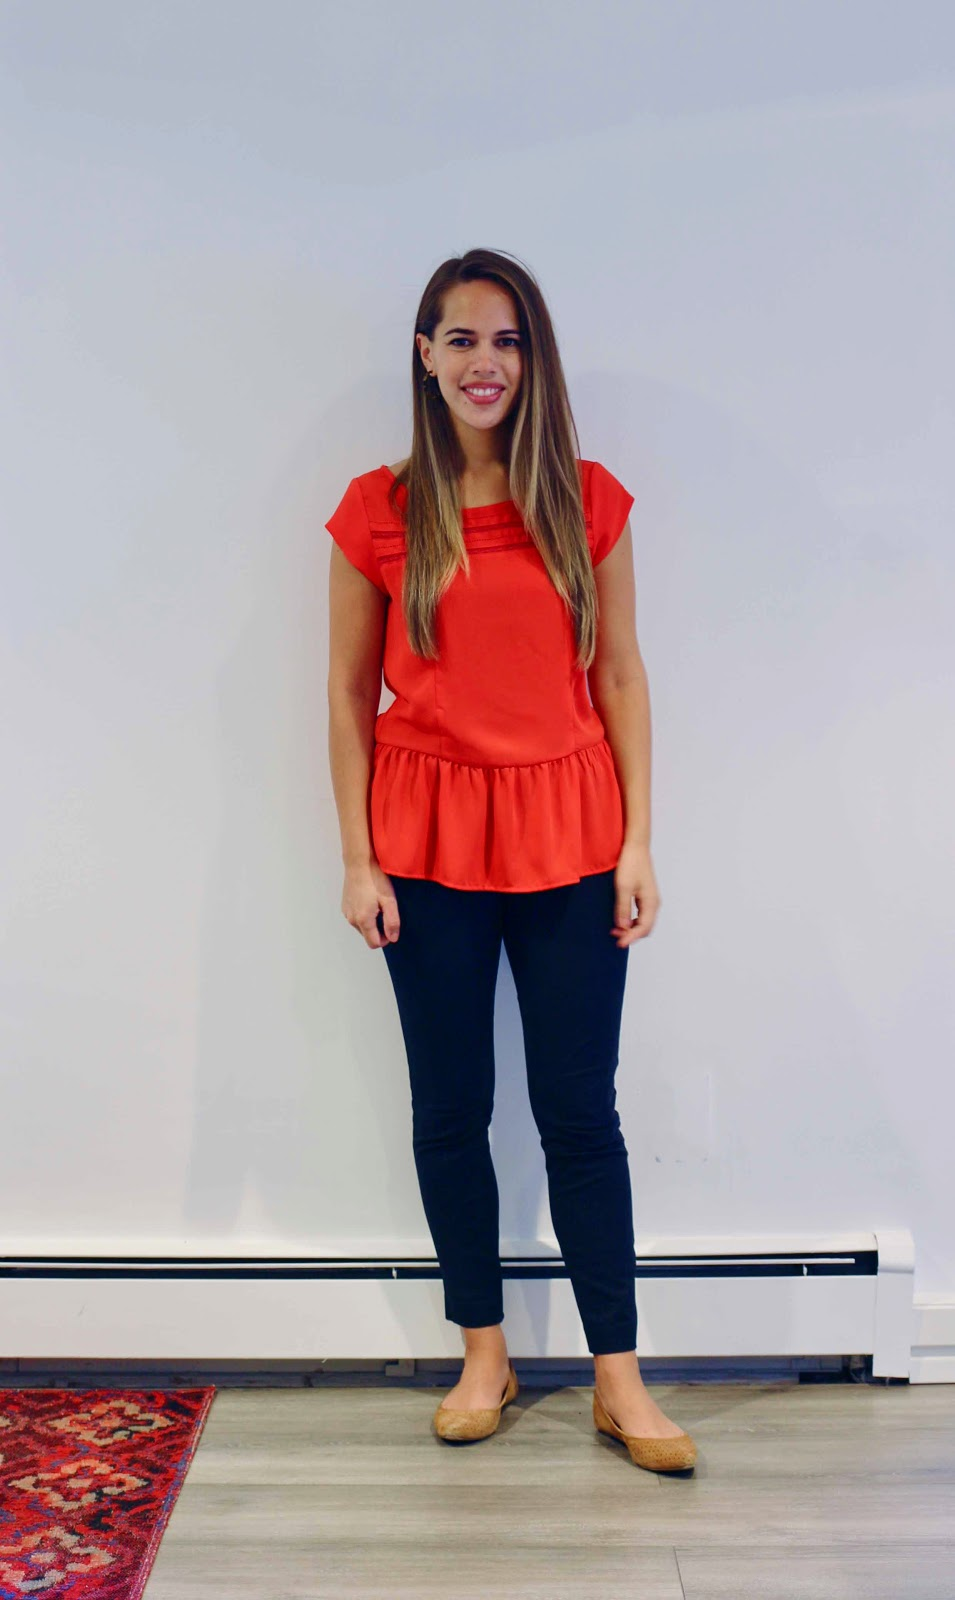 Jules in Flats - Red Peplum Top (Business Casual Summer Workwear on a Budget)